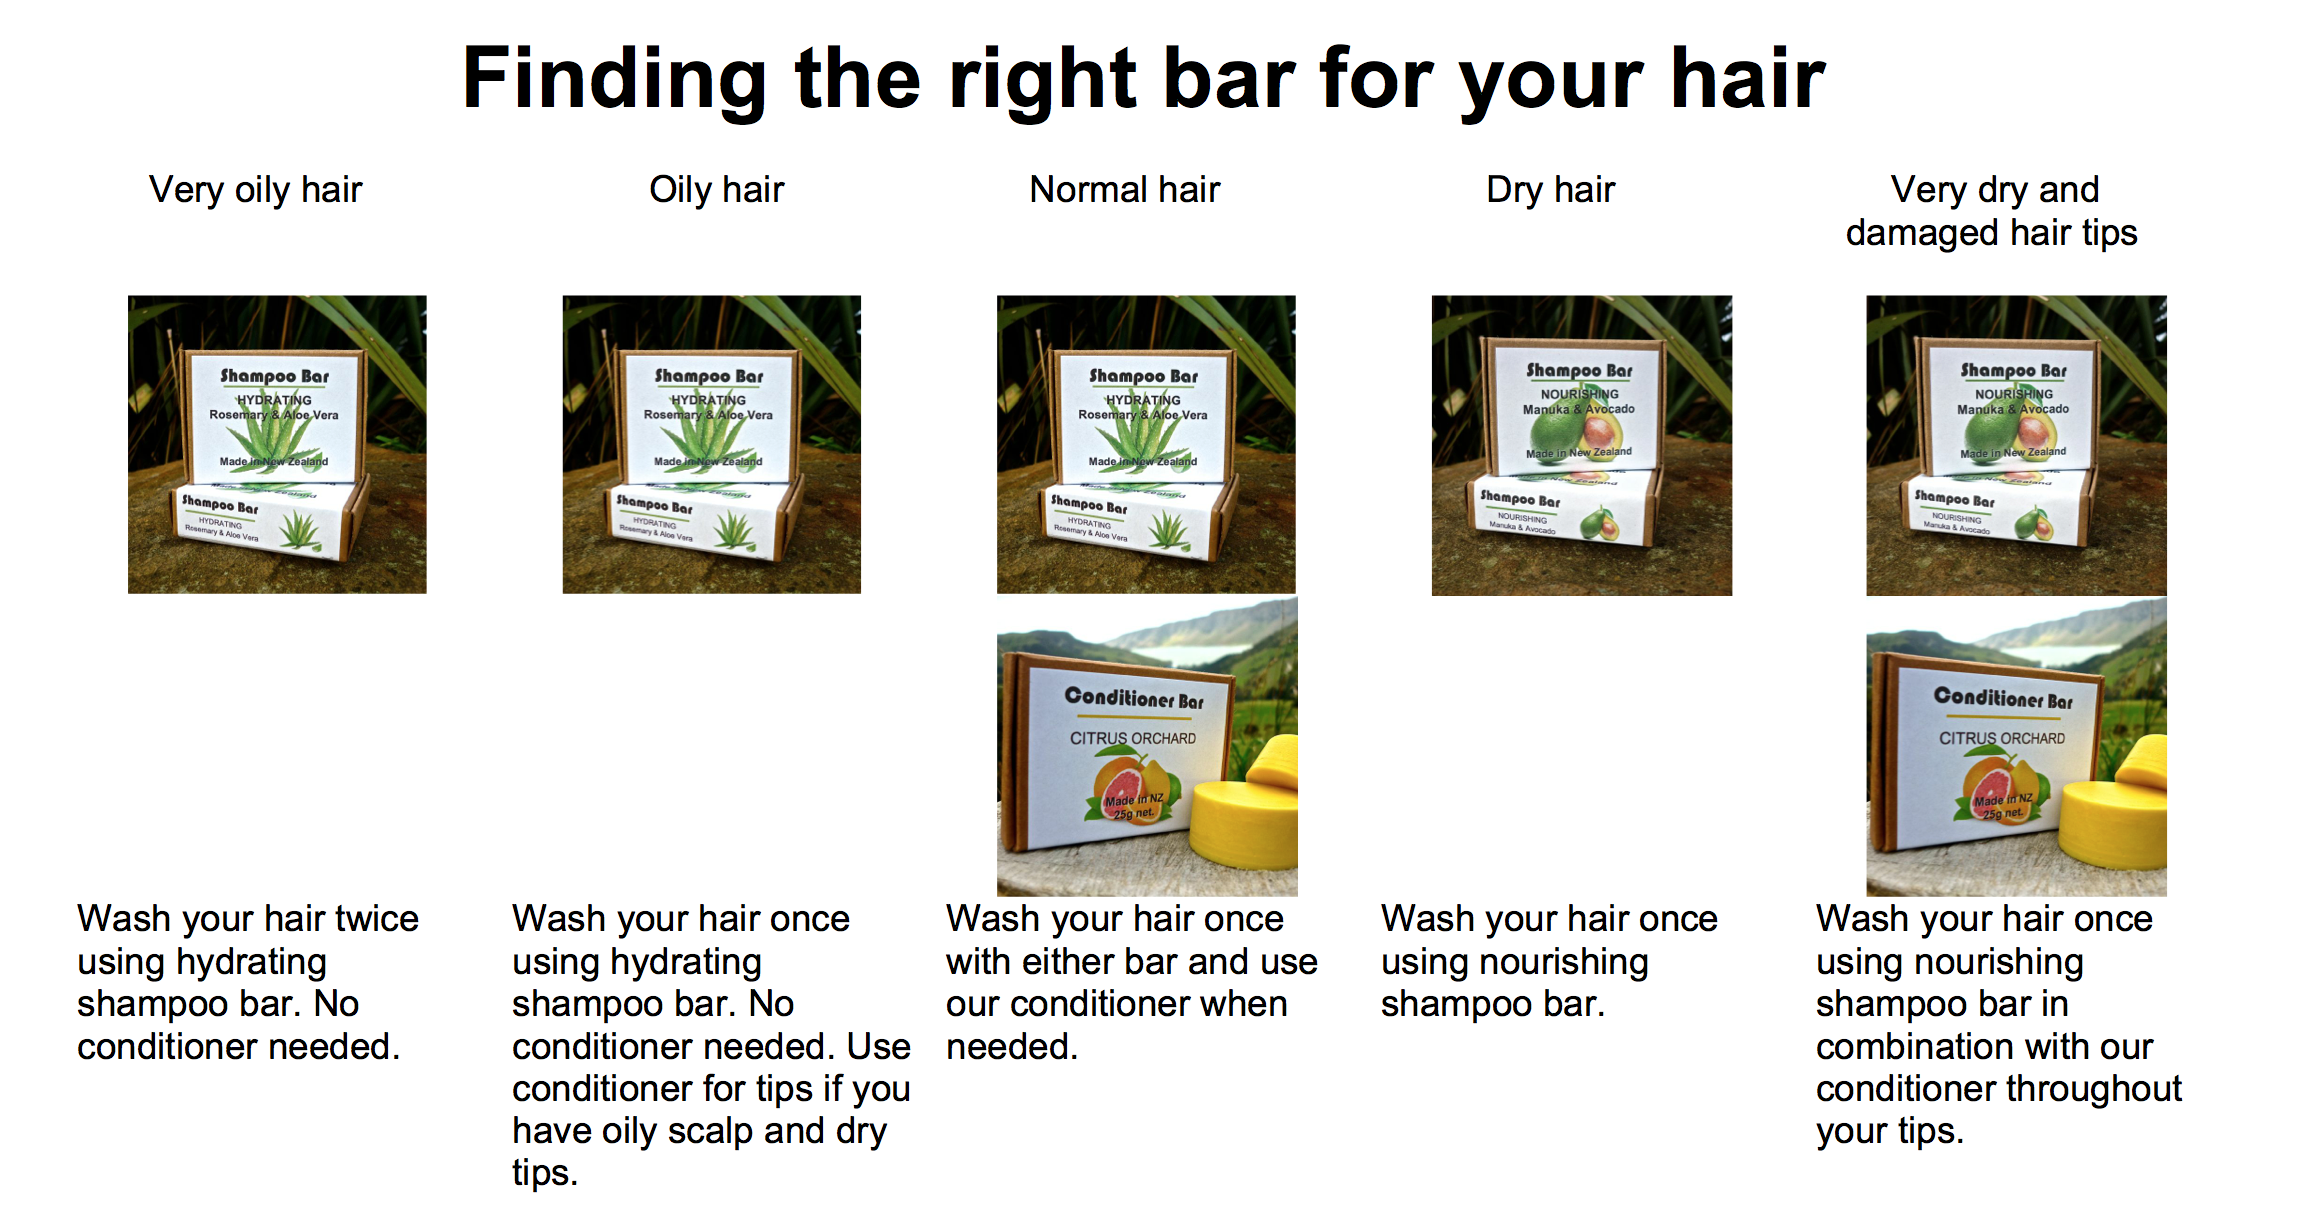 Finding the right bar